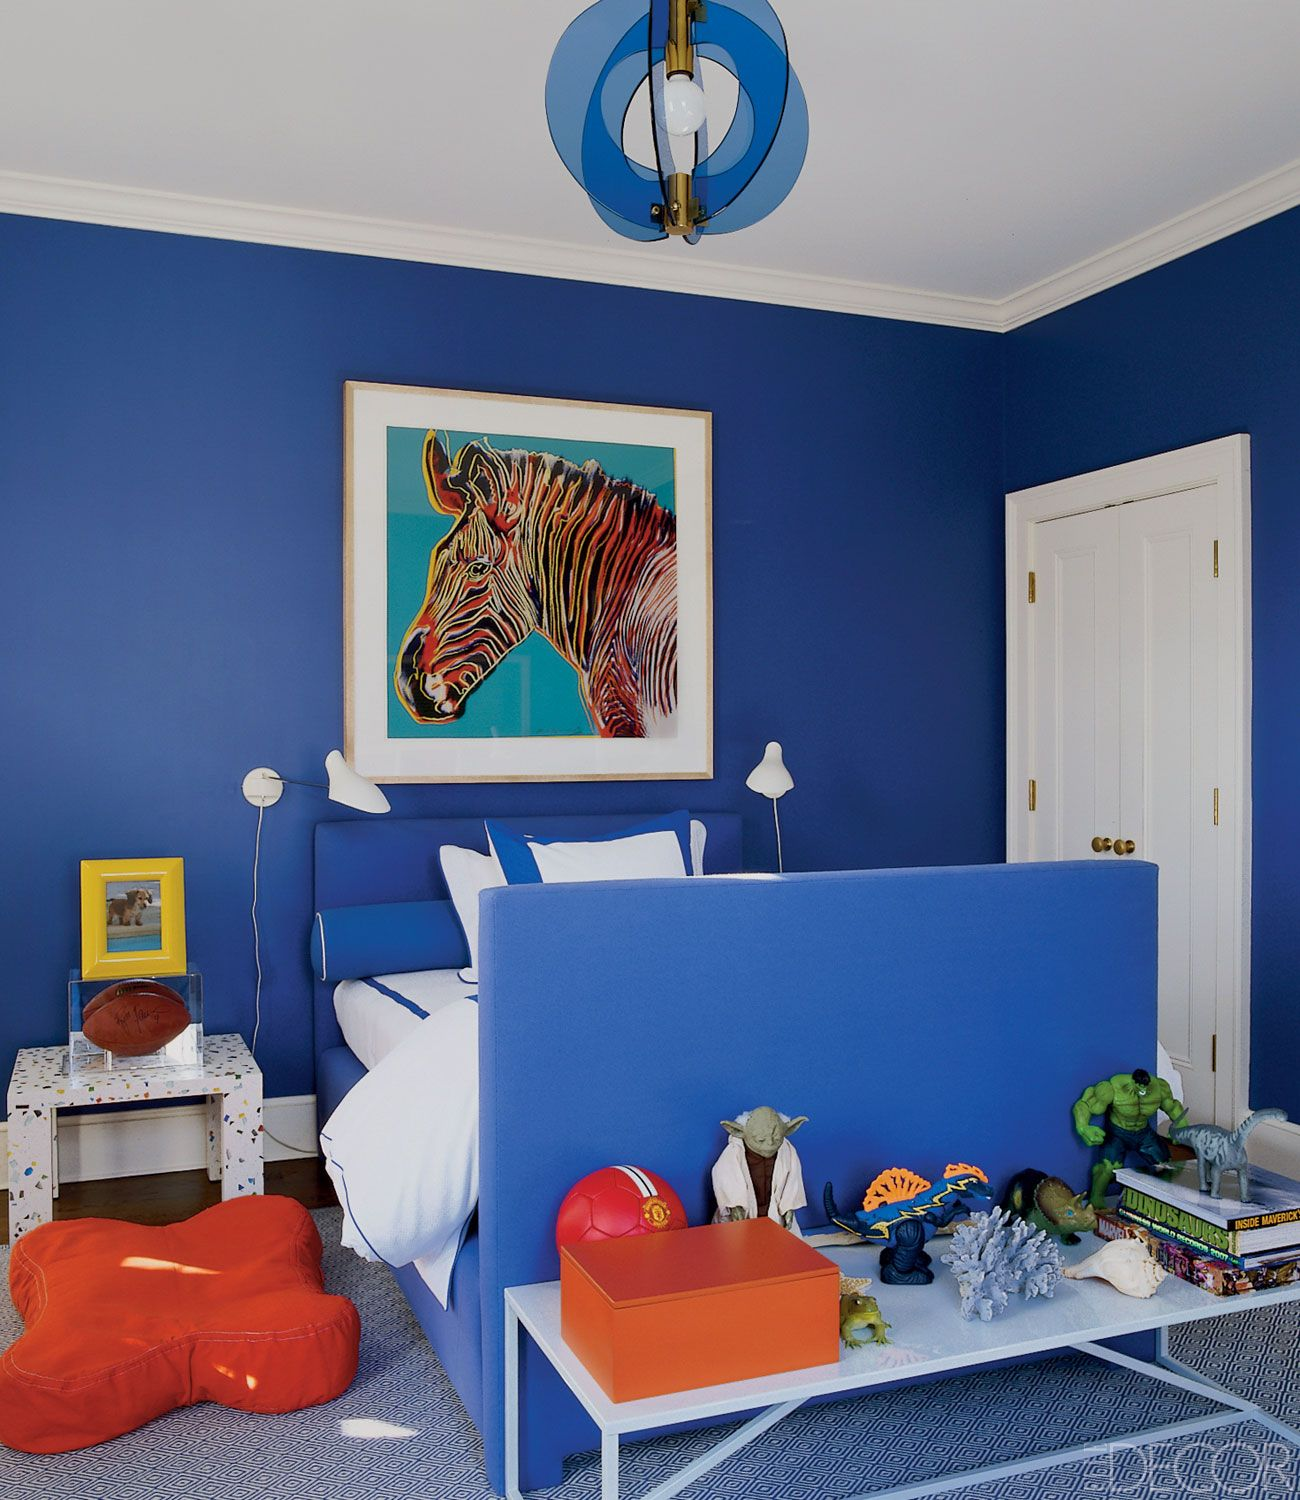 Boy Rooms 15 cool boys bedroom ideas - decorating a little boy room